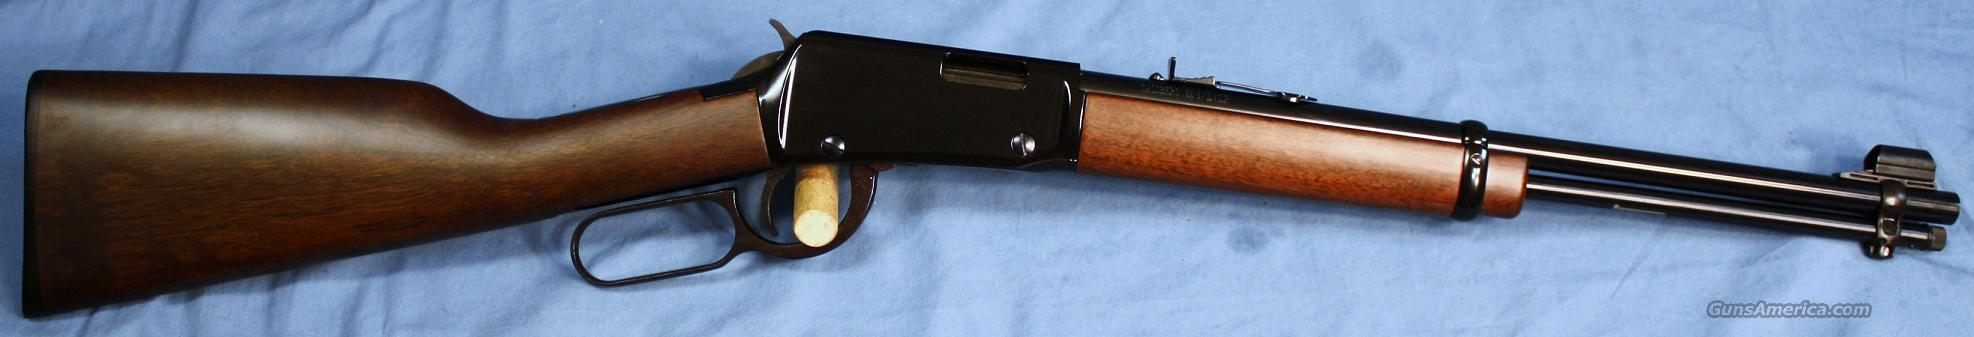 Henry Rifle Co. Lever Action Youth Rifle .22LR  Guns > Rifles > Henry Rifle Company